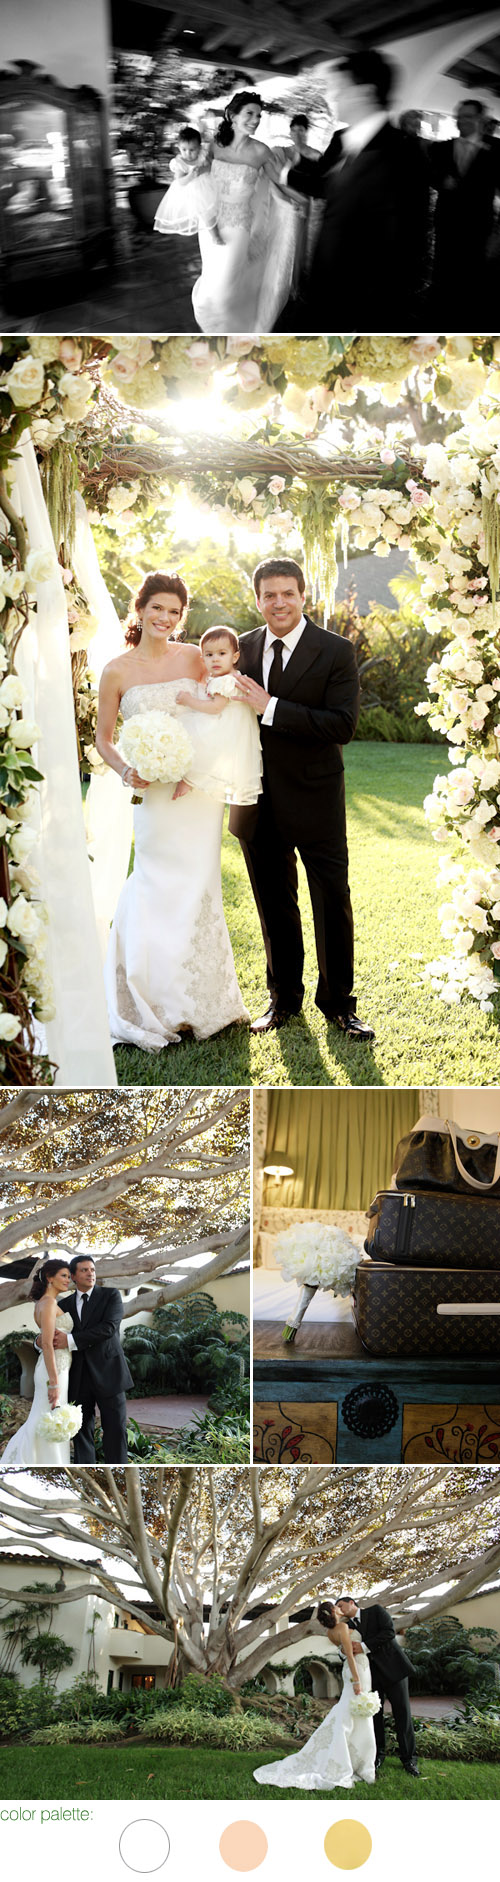 Stylish Santa Barbara real wedding at The Four Seasons Biltmore - Angelique and Michael Deluca - The Social Network movie producer - images by Joan Allen Weddings